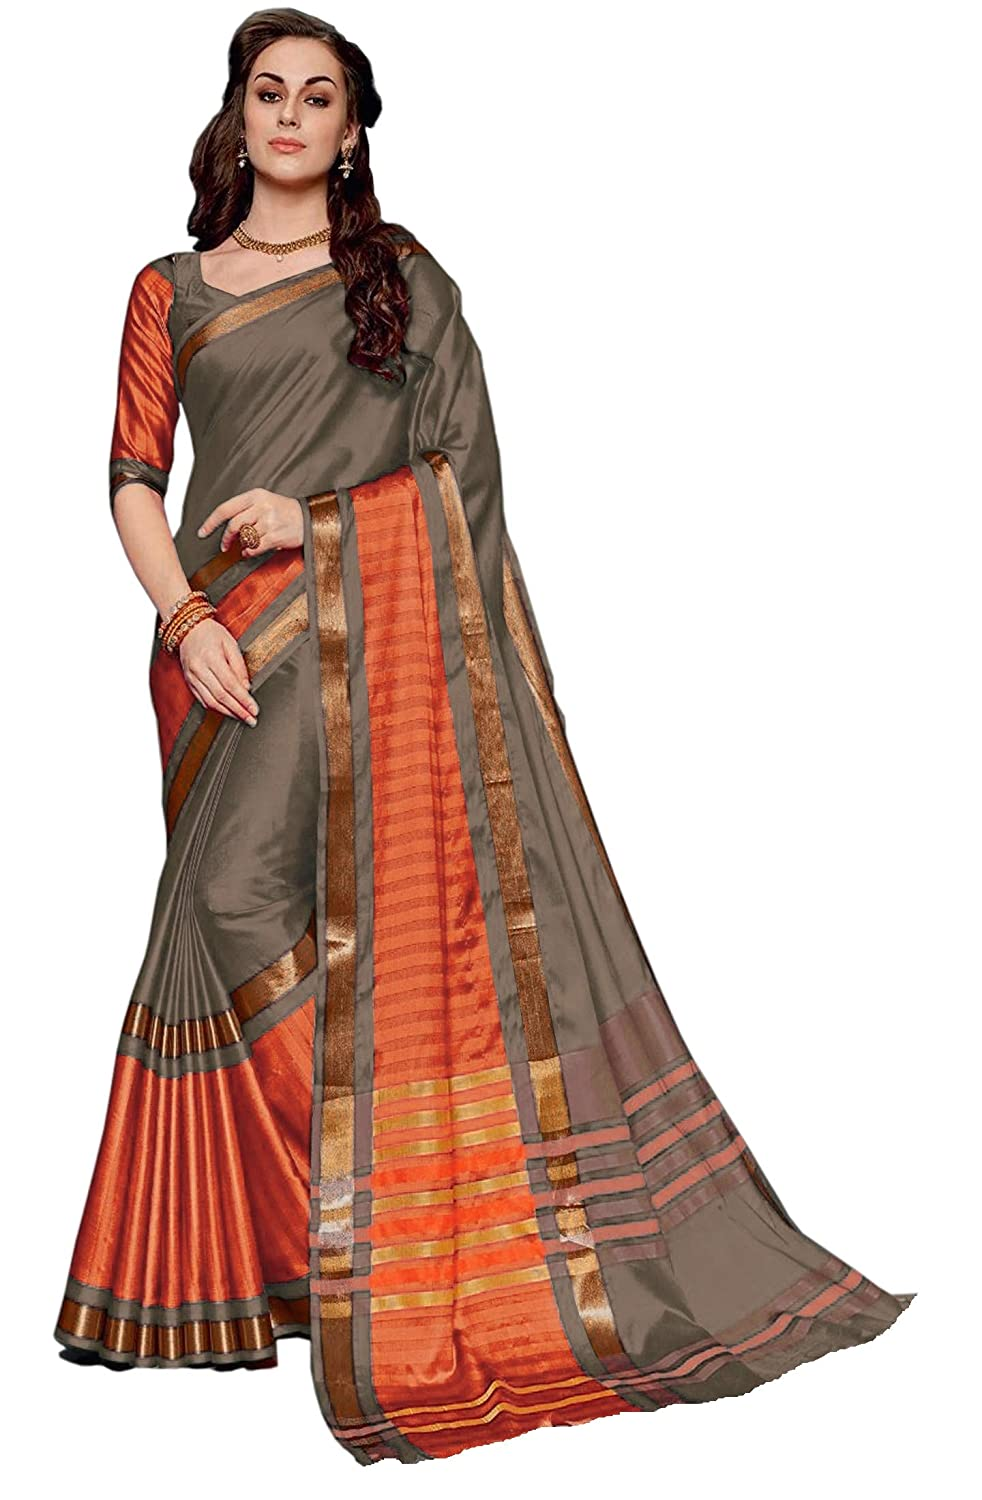 36e03fcce6 Shop for sarees ( clothing & accessories > women > ethnic wear ...